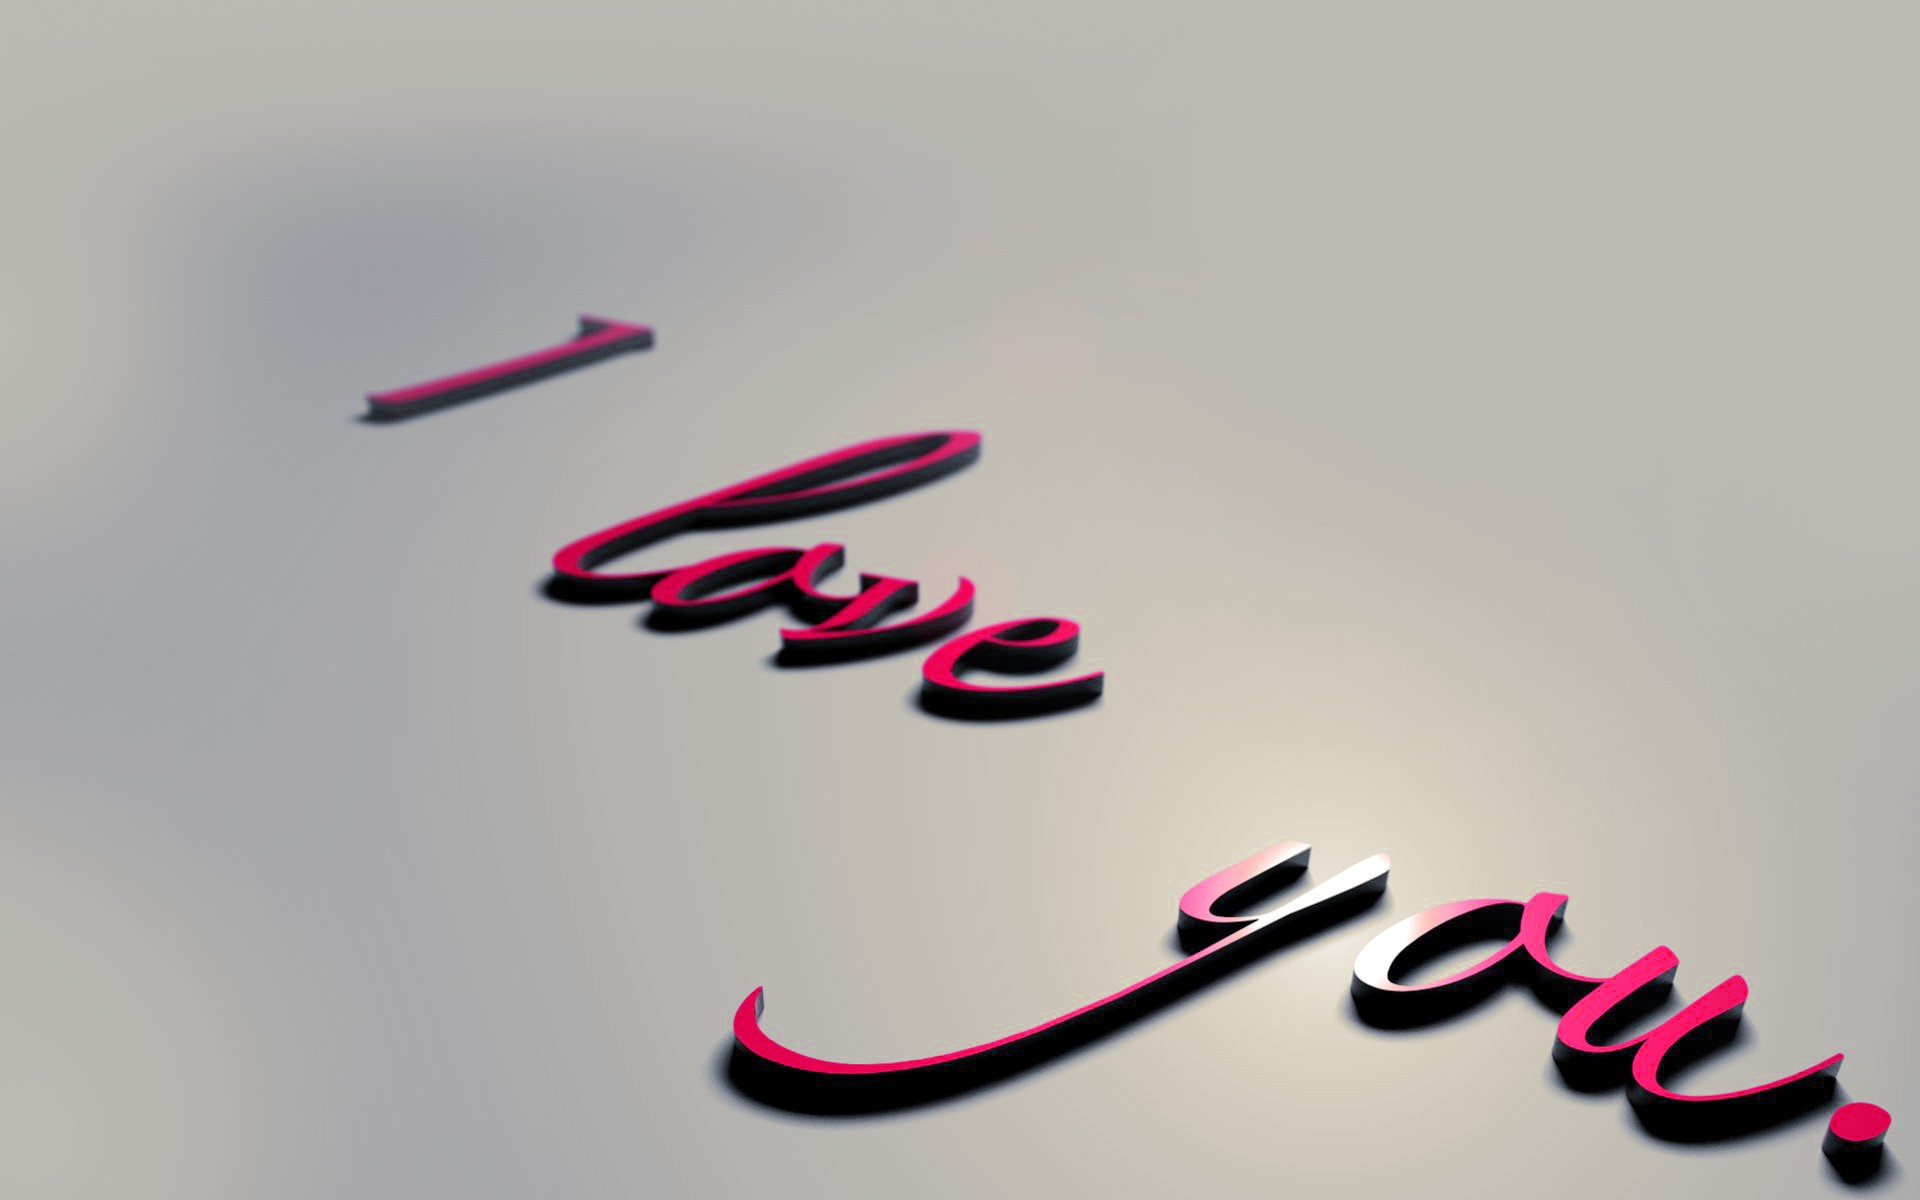 Love Wallpaper Hd 3d : 3D Love Letters 14 Hd Wallpaper - Hdlovewall.com